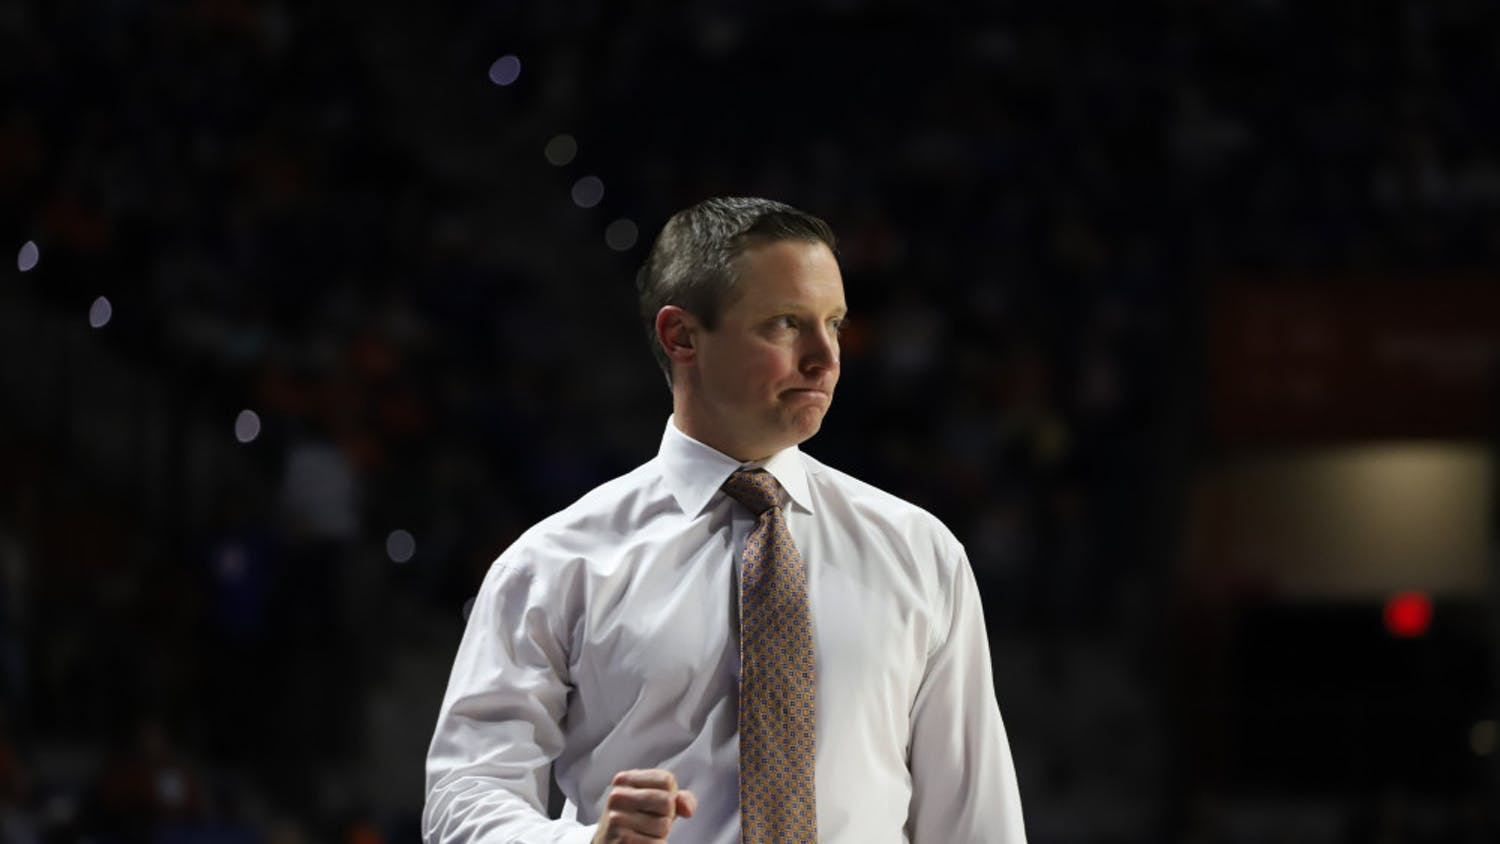 Head coach Mike White court side at the UF-Marshal game last season. He will prepare his team for its first game in nearly two weeks against No. 24 Arkansas